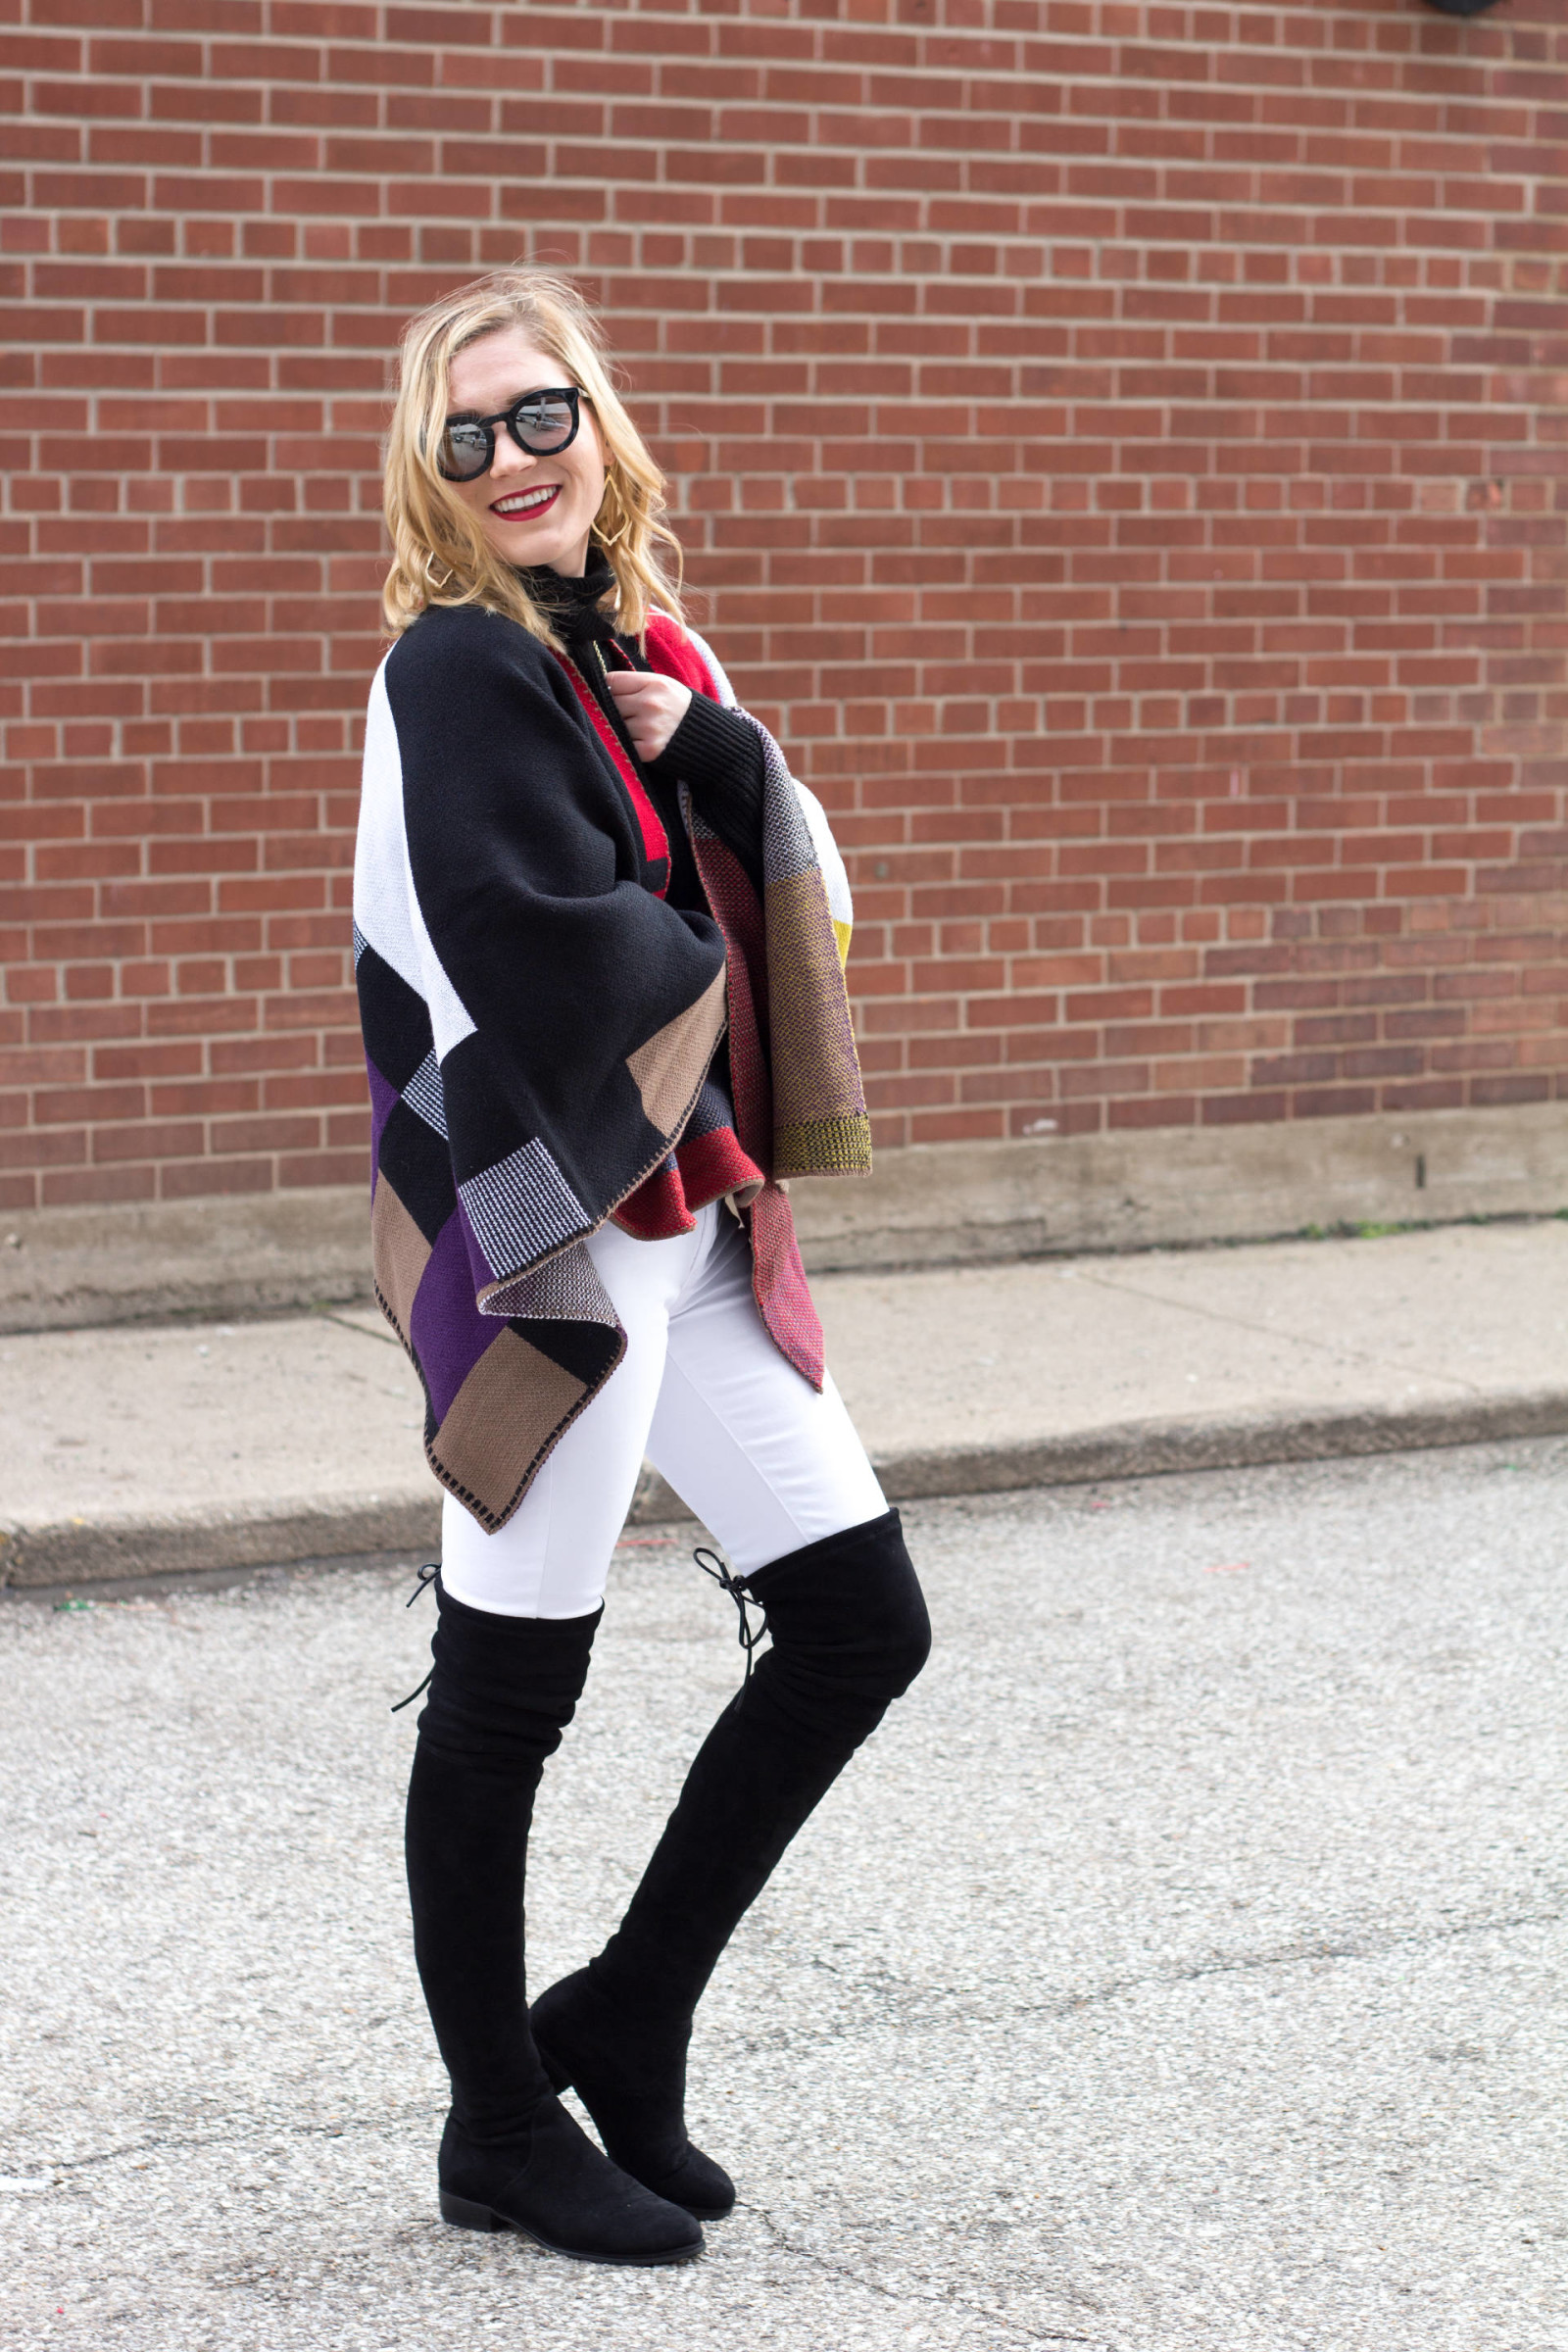 SheIn Plaid Cape | www.goldhattedlover.com